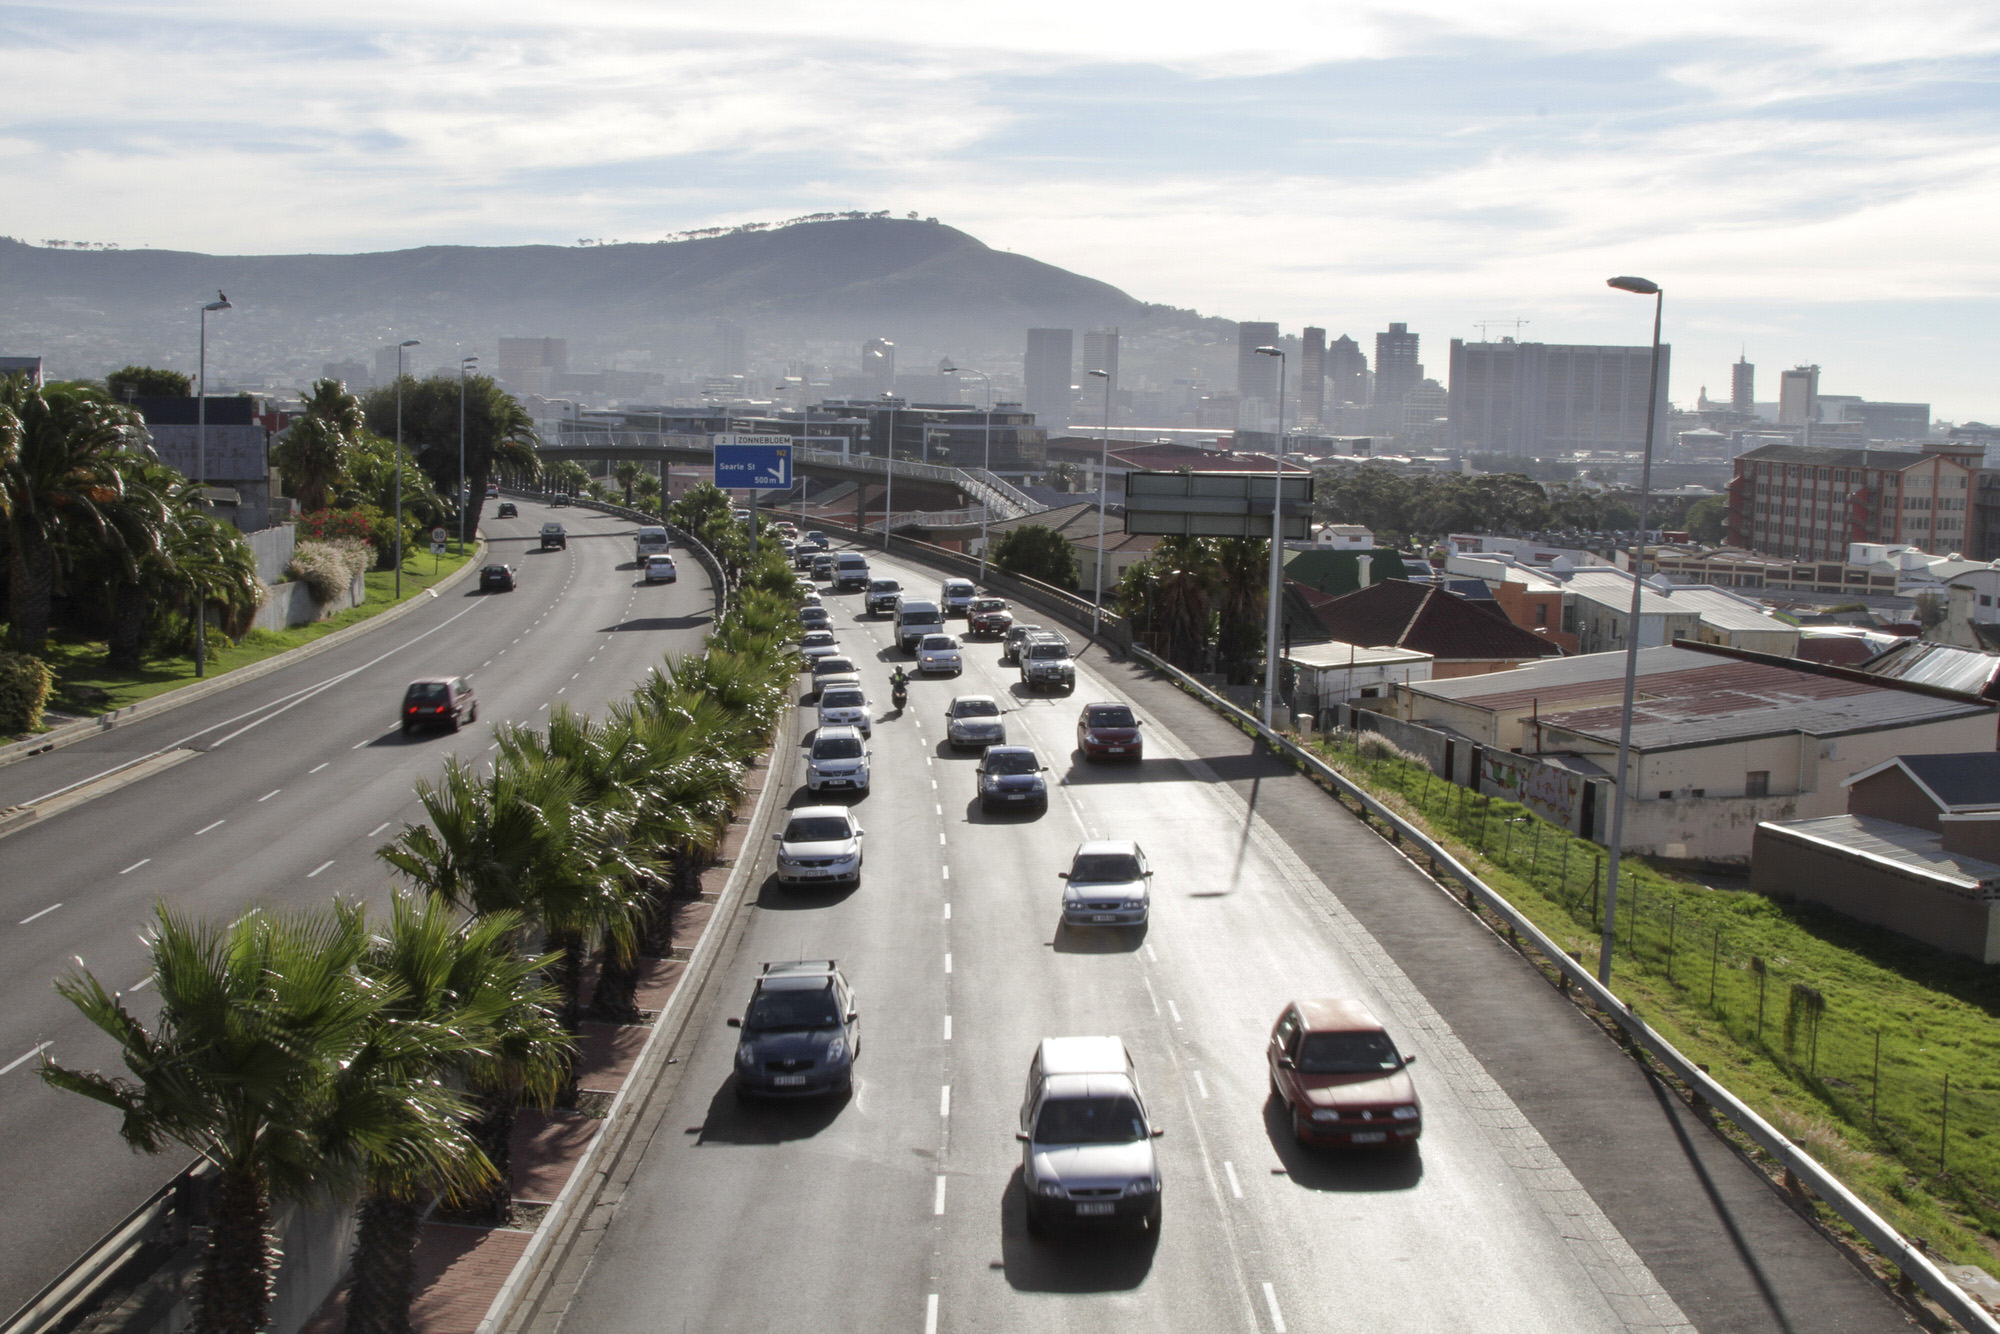 Commuter traffic exits the city center on a highway in Cape Town, South Africa, on Wednesday, April 24, 2013. South Africa's gross domestic product is forecast to expand 2.6 percent this year, compared with 2.5 percent in 2012, according to the country's central bank. Photographer: Nadine Hutton/Bloomberg